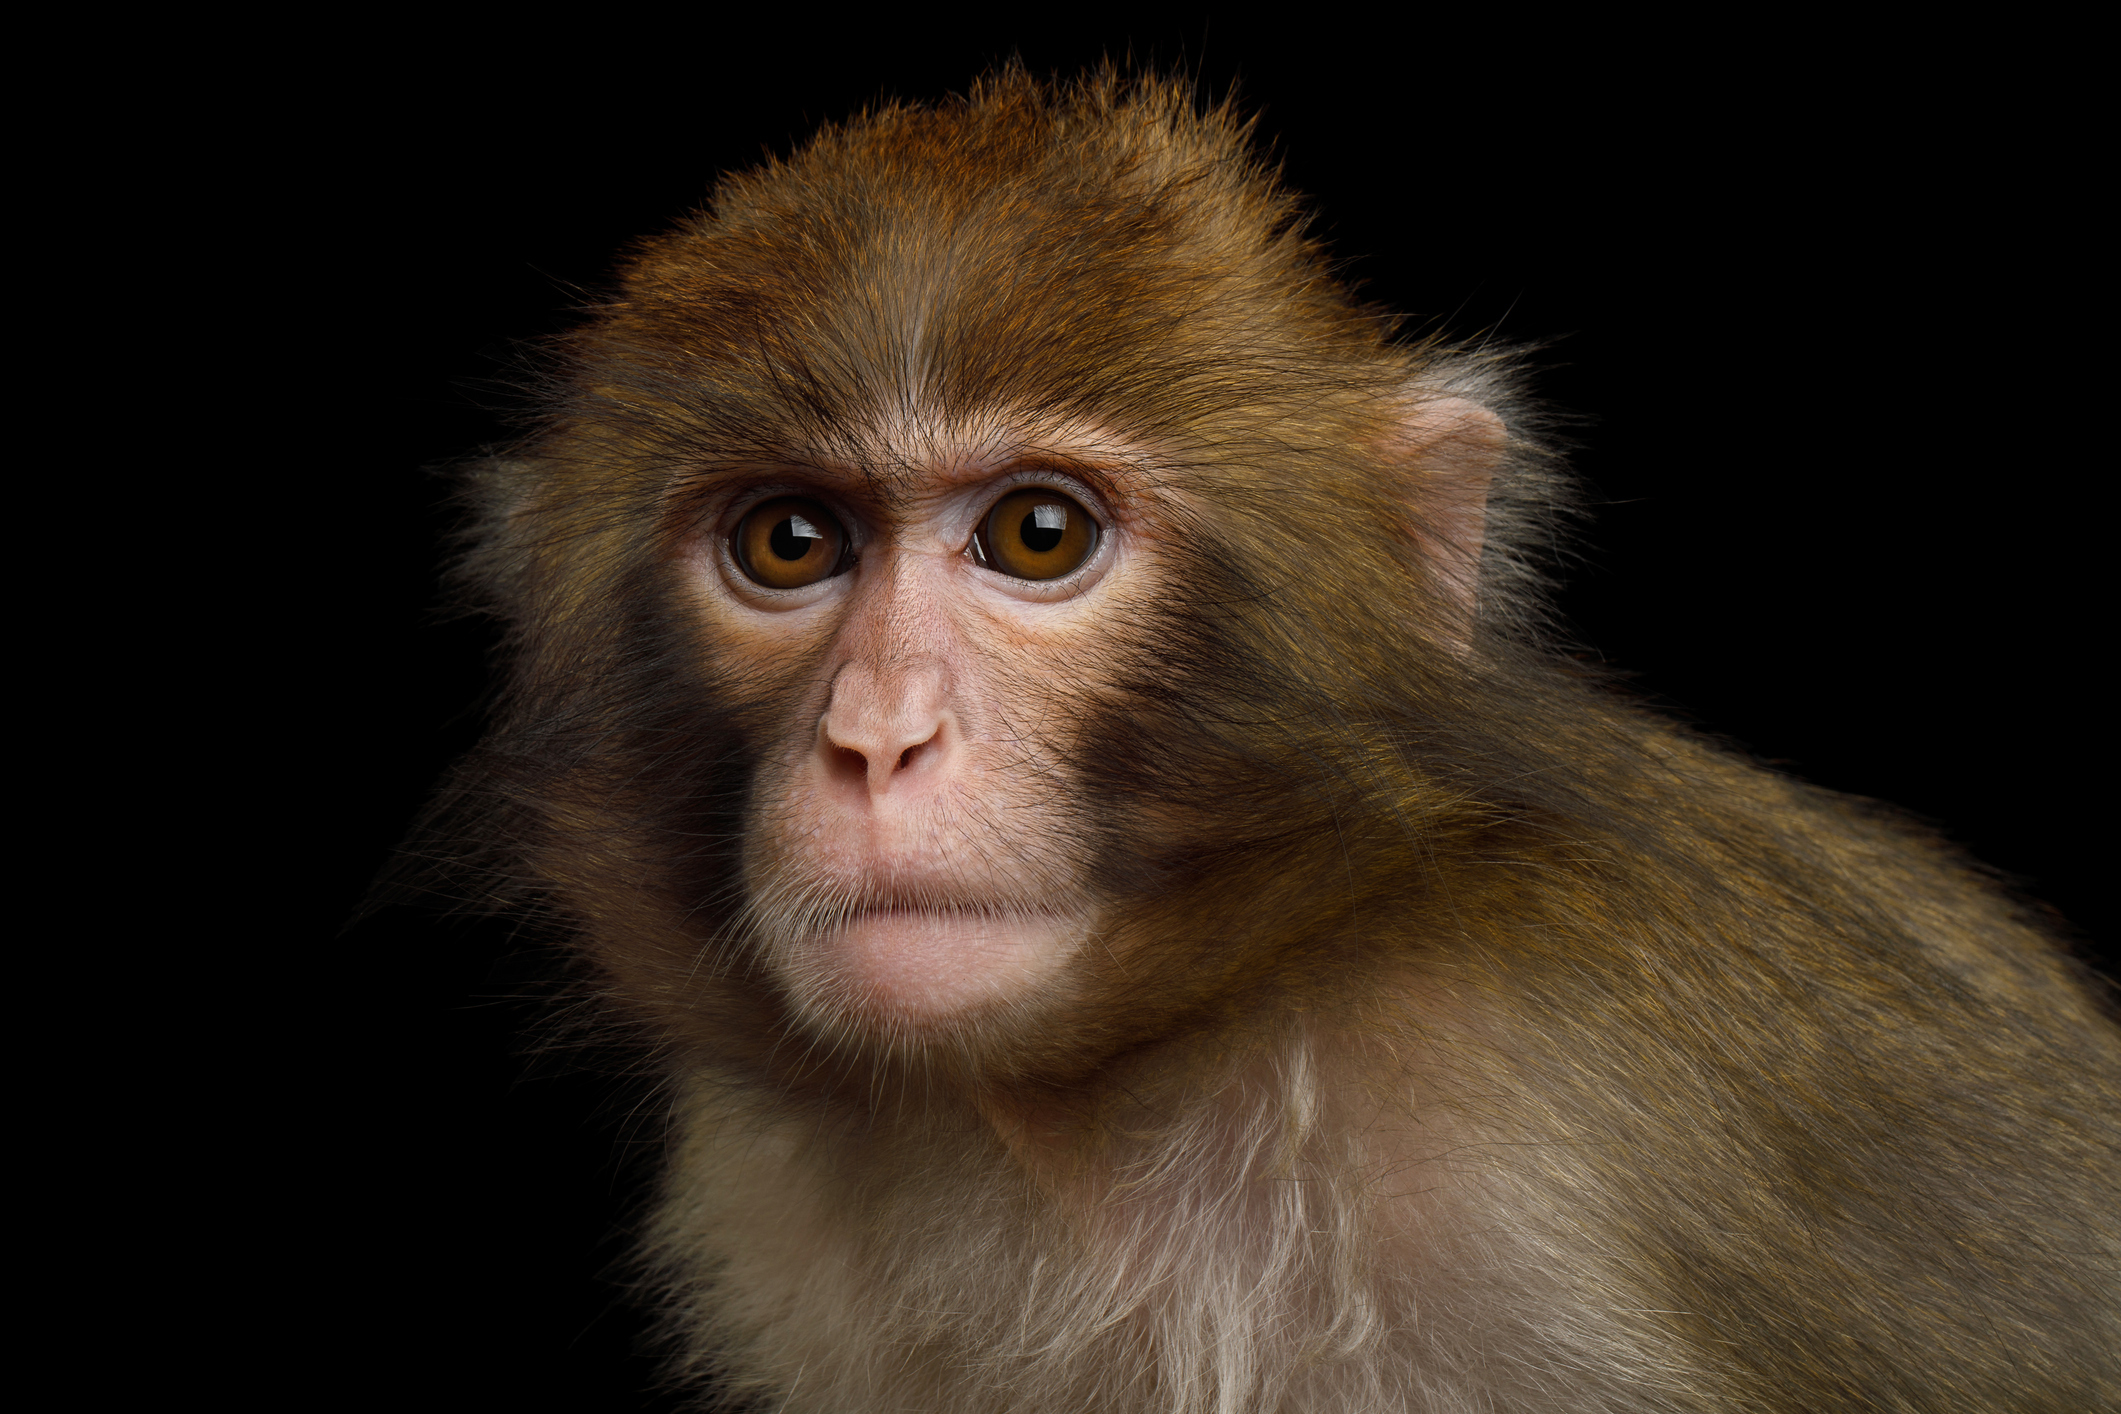 Scientists Controlled the Behavior of Monkeys by Zapping Their Brains With Ultrasound Waves - Newsweek